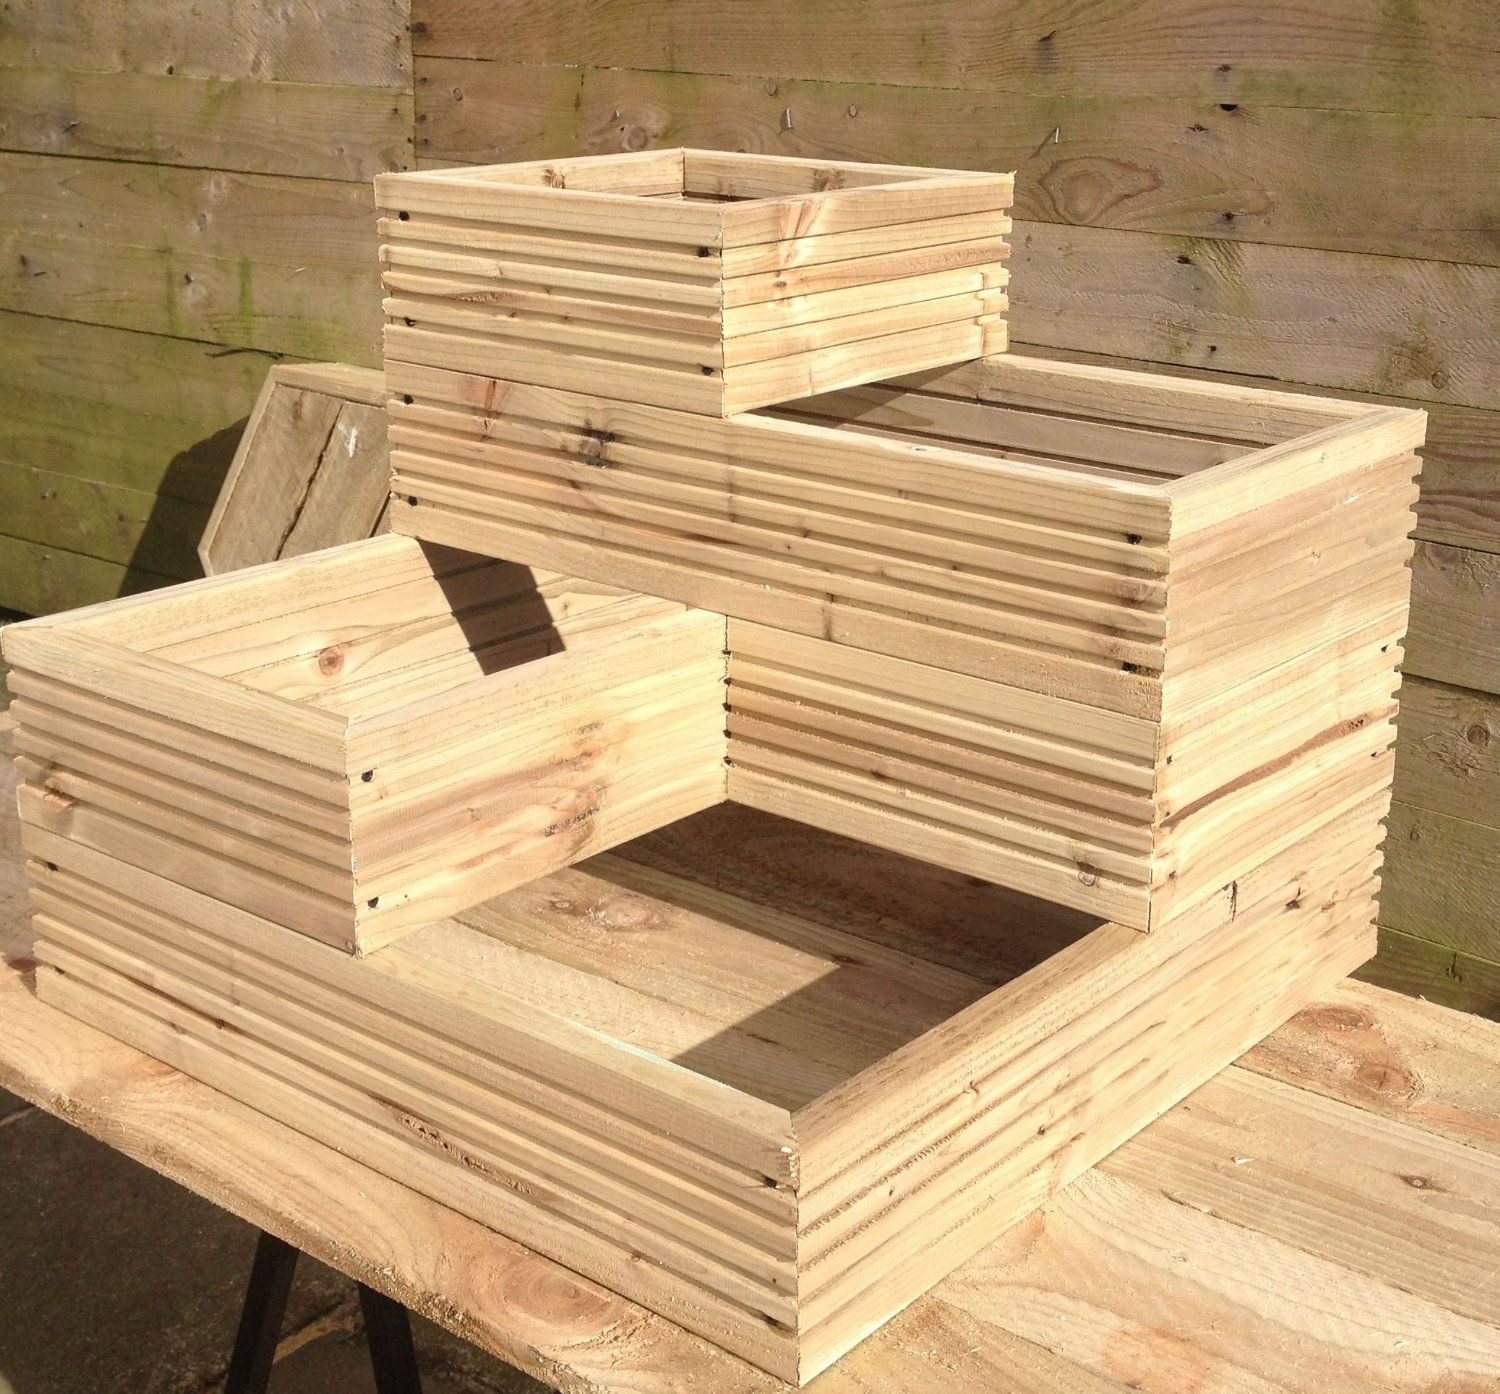 large 4 teir wooden planter ready assembled Amazon.co.uk